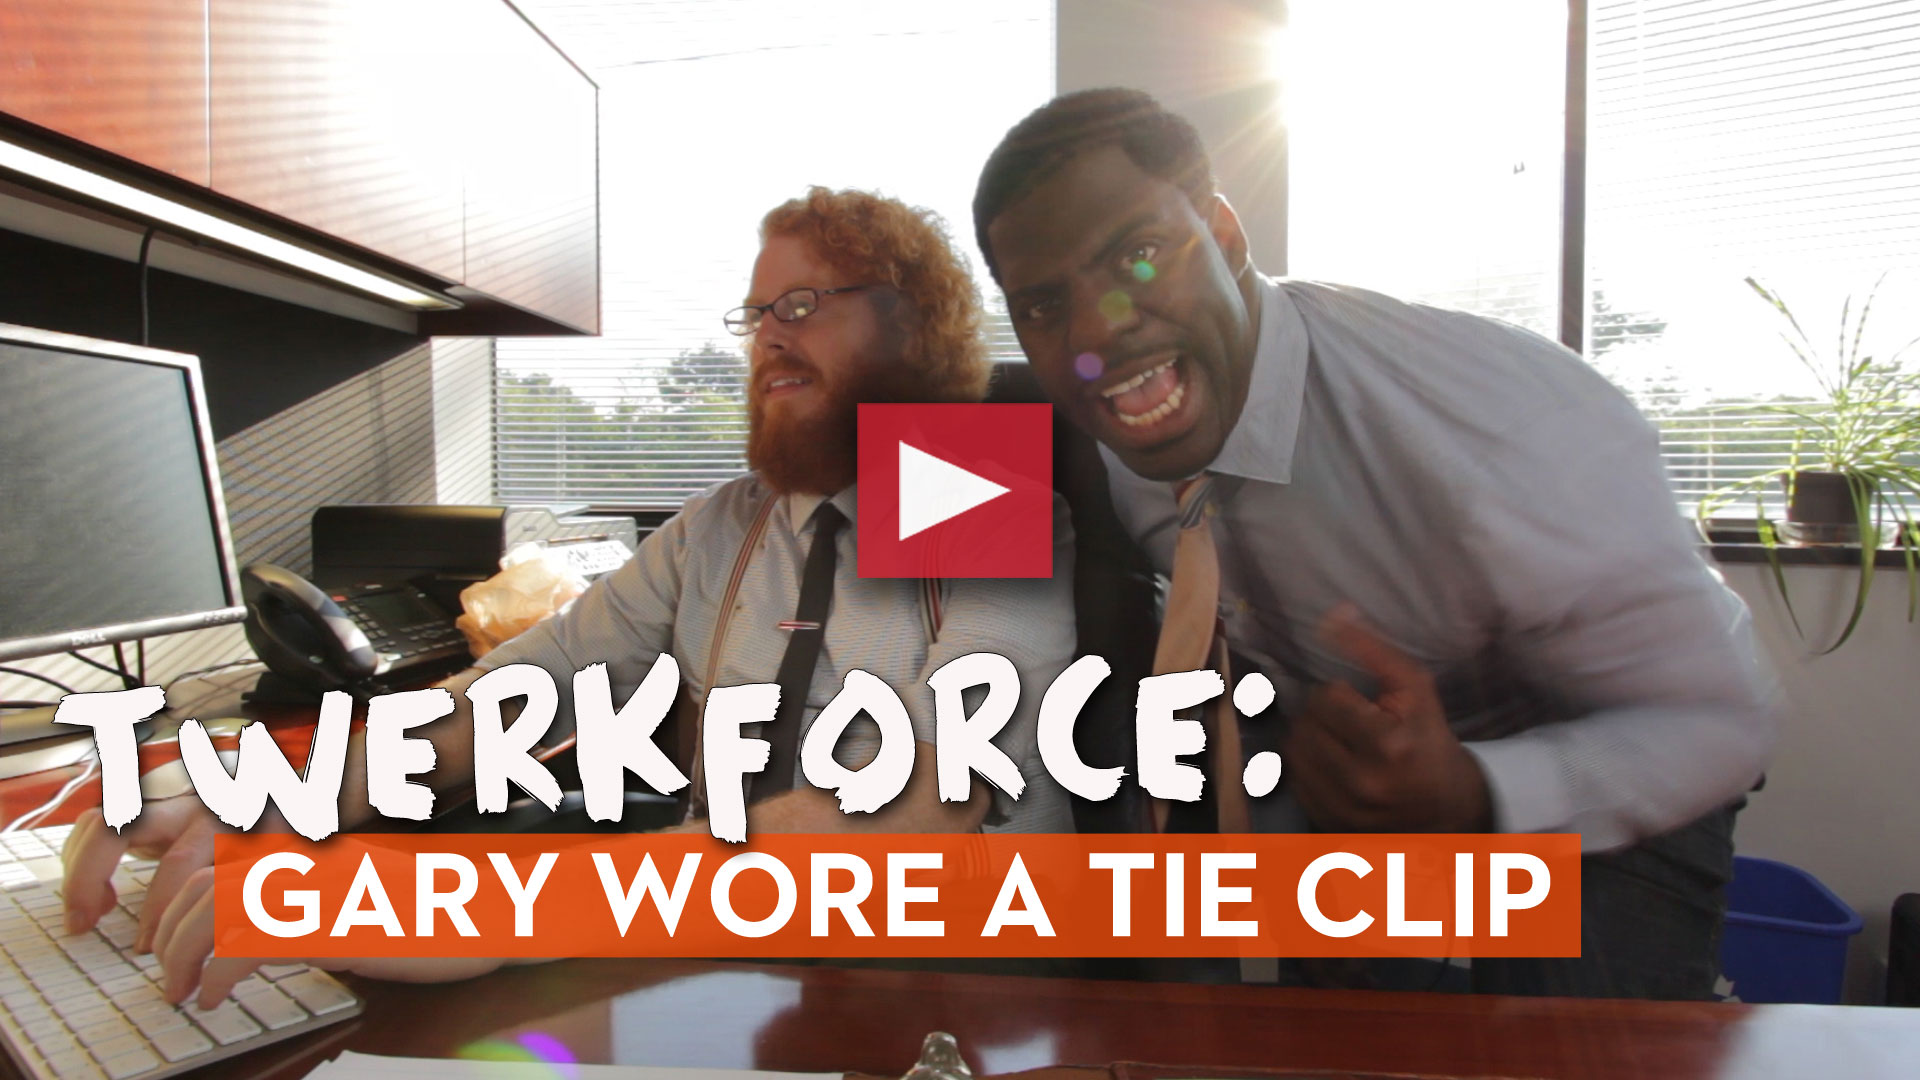 TwerkForce – Gary Wore A Tie Clip (Feat. Rhymefest)